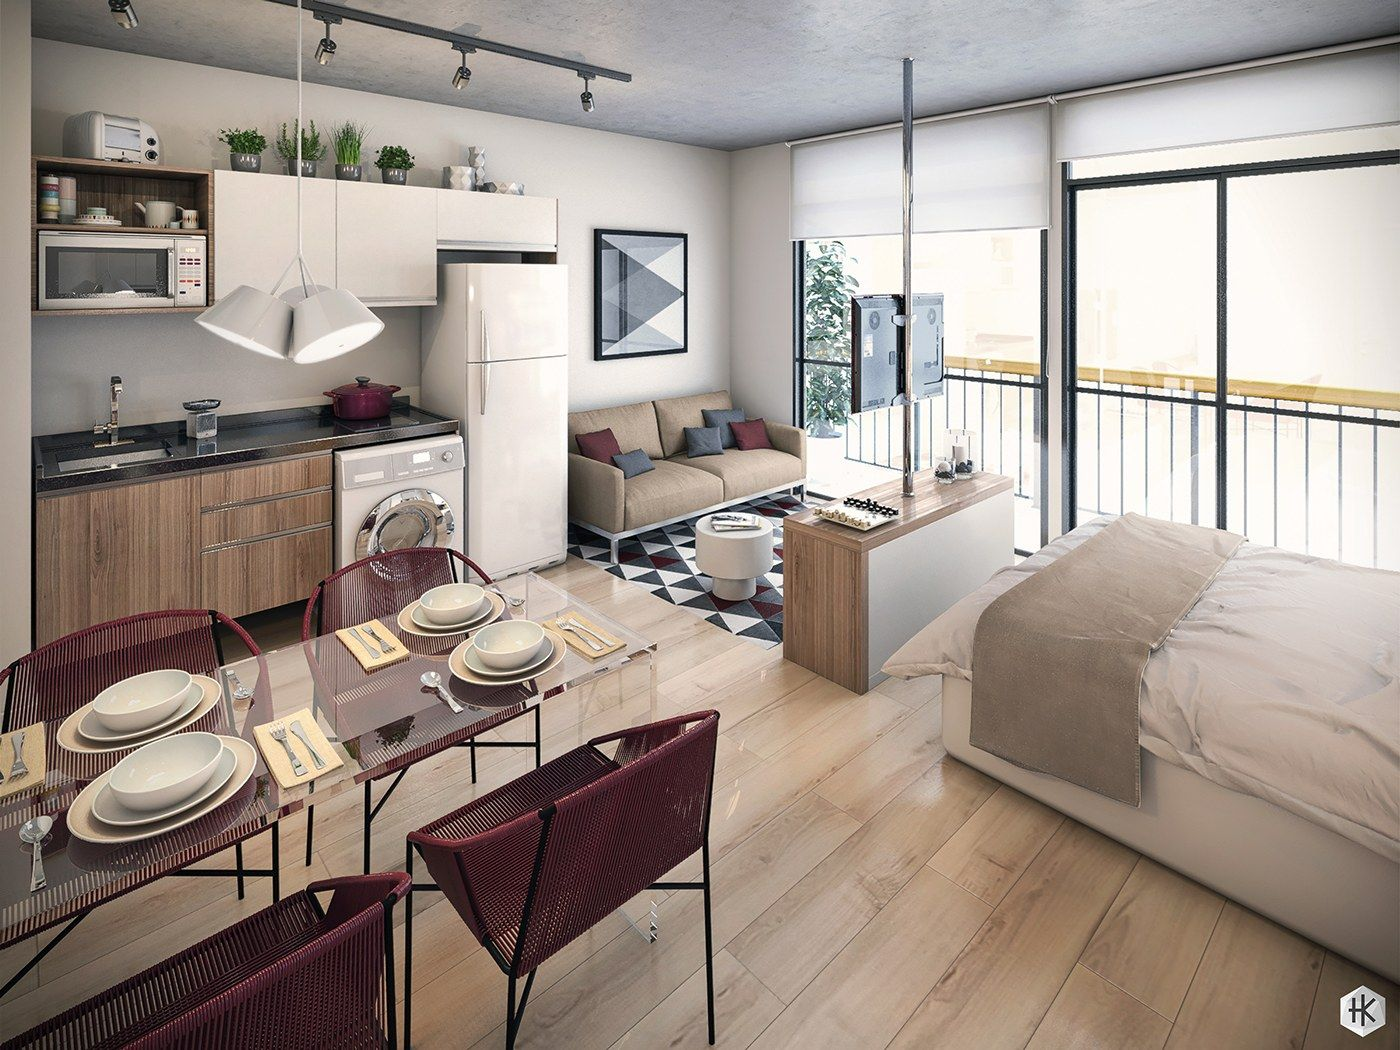 Studio apartments are notoriously difficult to decorate especially within smaller layouts the simplest approach is to create a coordinated style that